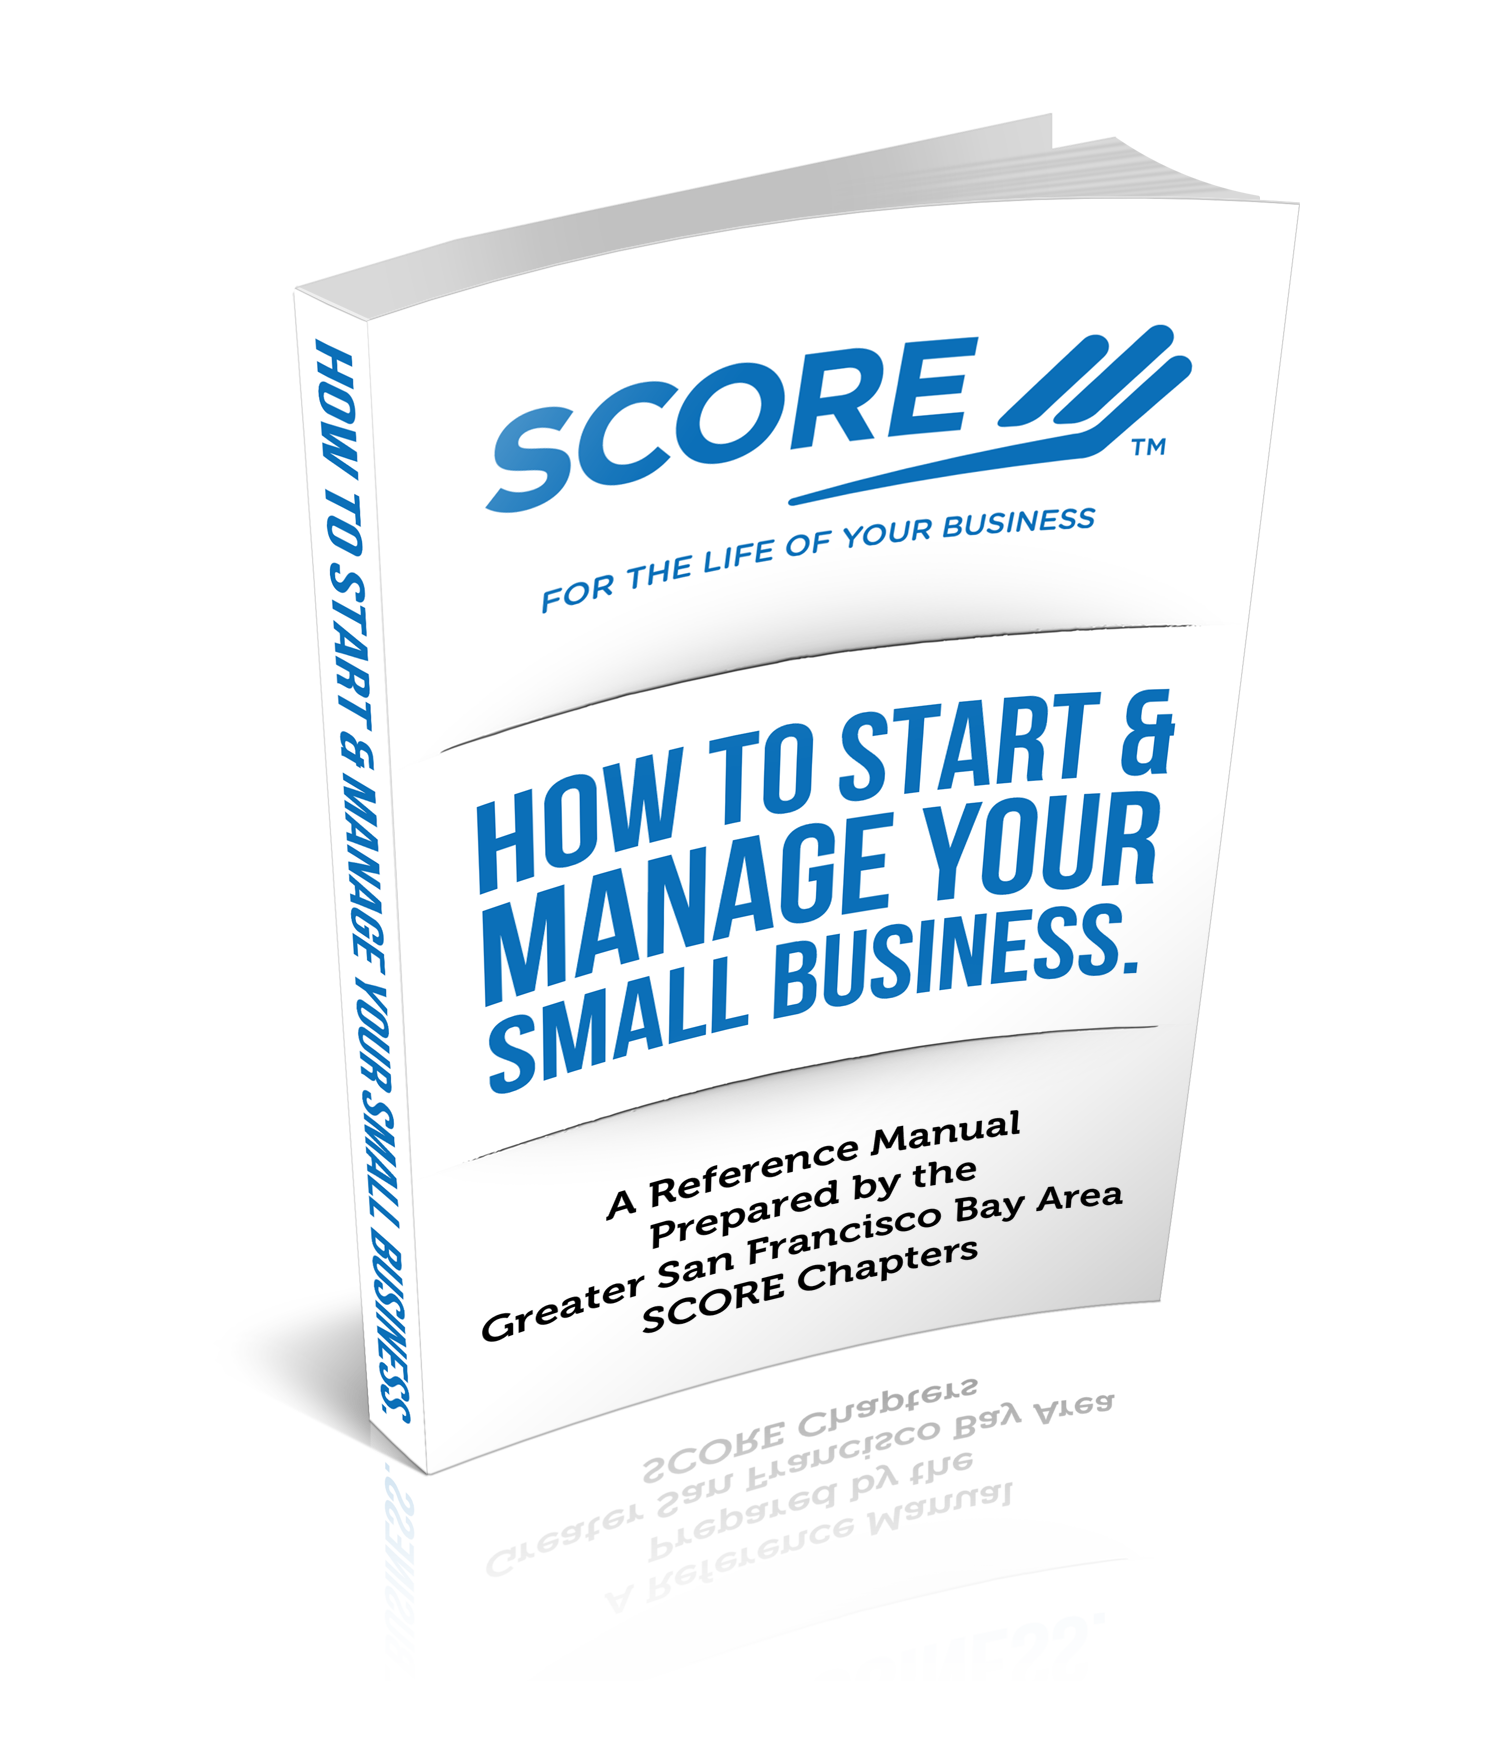 East Bay Score Start Manage Business Manual